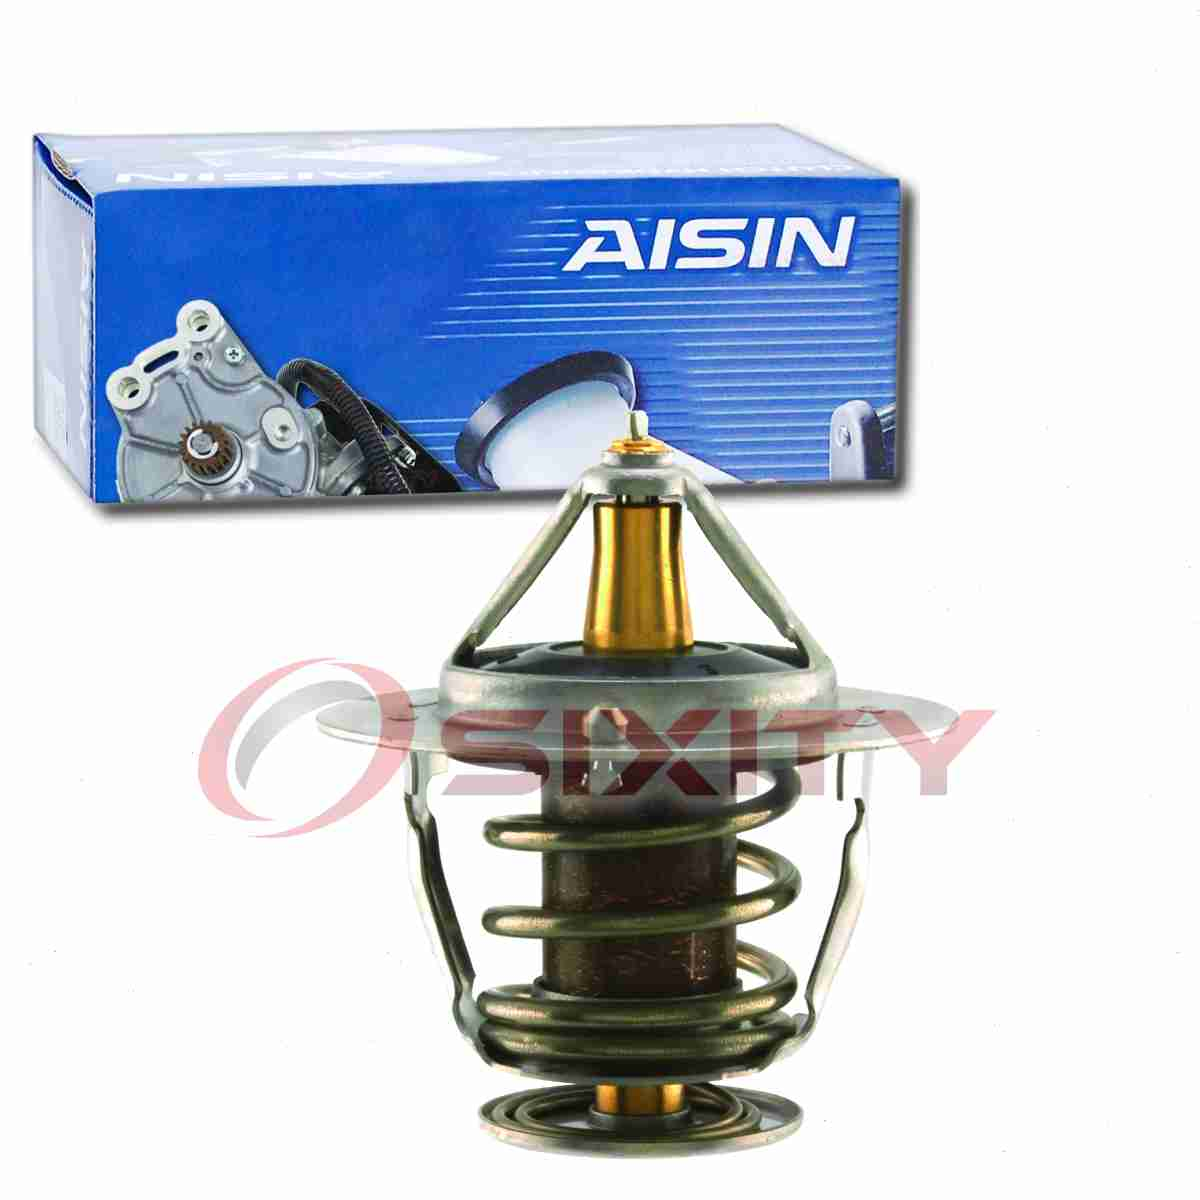 AISIN Coolant Thermostat Gasket for 1998-2007 Toyota Land Cruiser 4.7L V8 gm